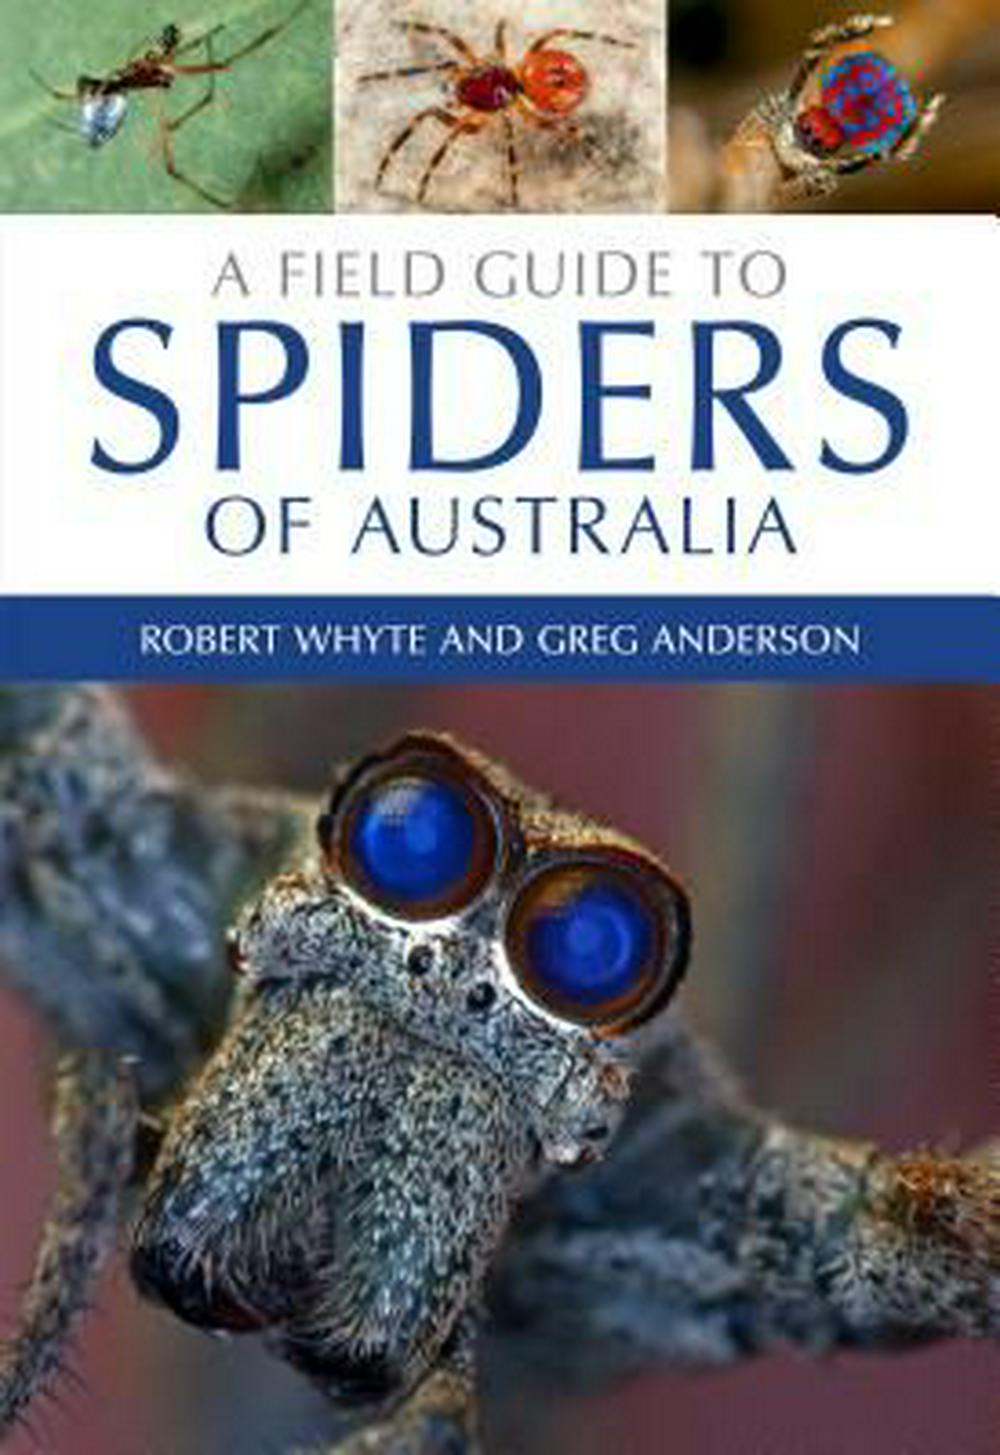 A Field Guide to Spiders of Australia by Robert Whyte, Greg Anderson, ISBN: 9780643107076